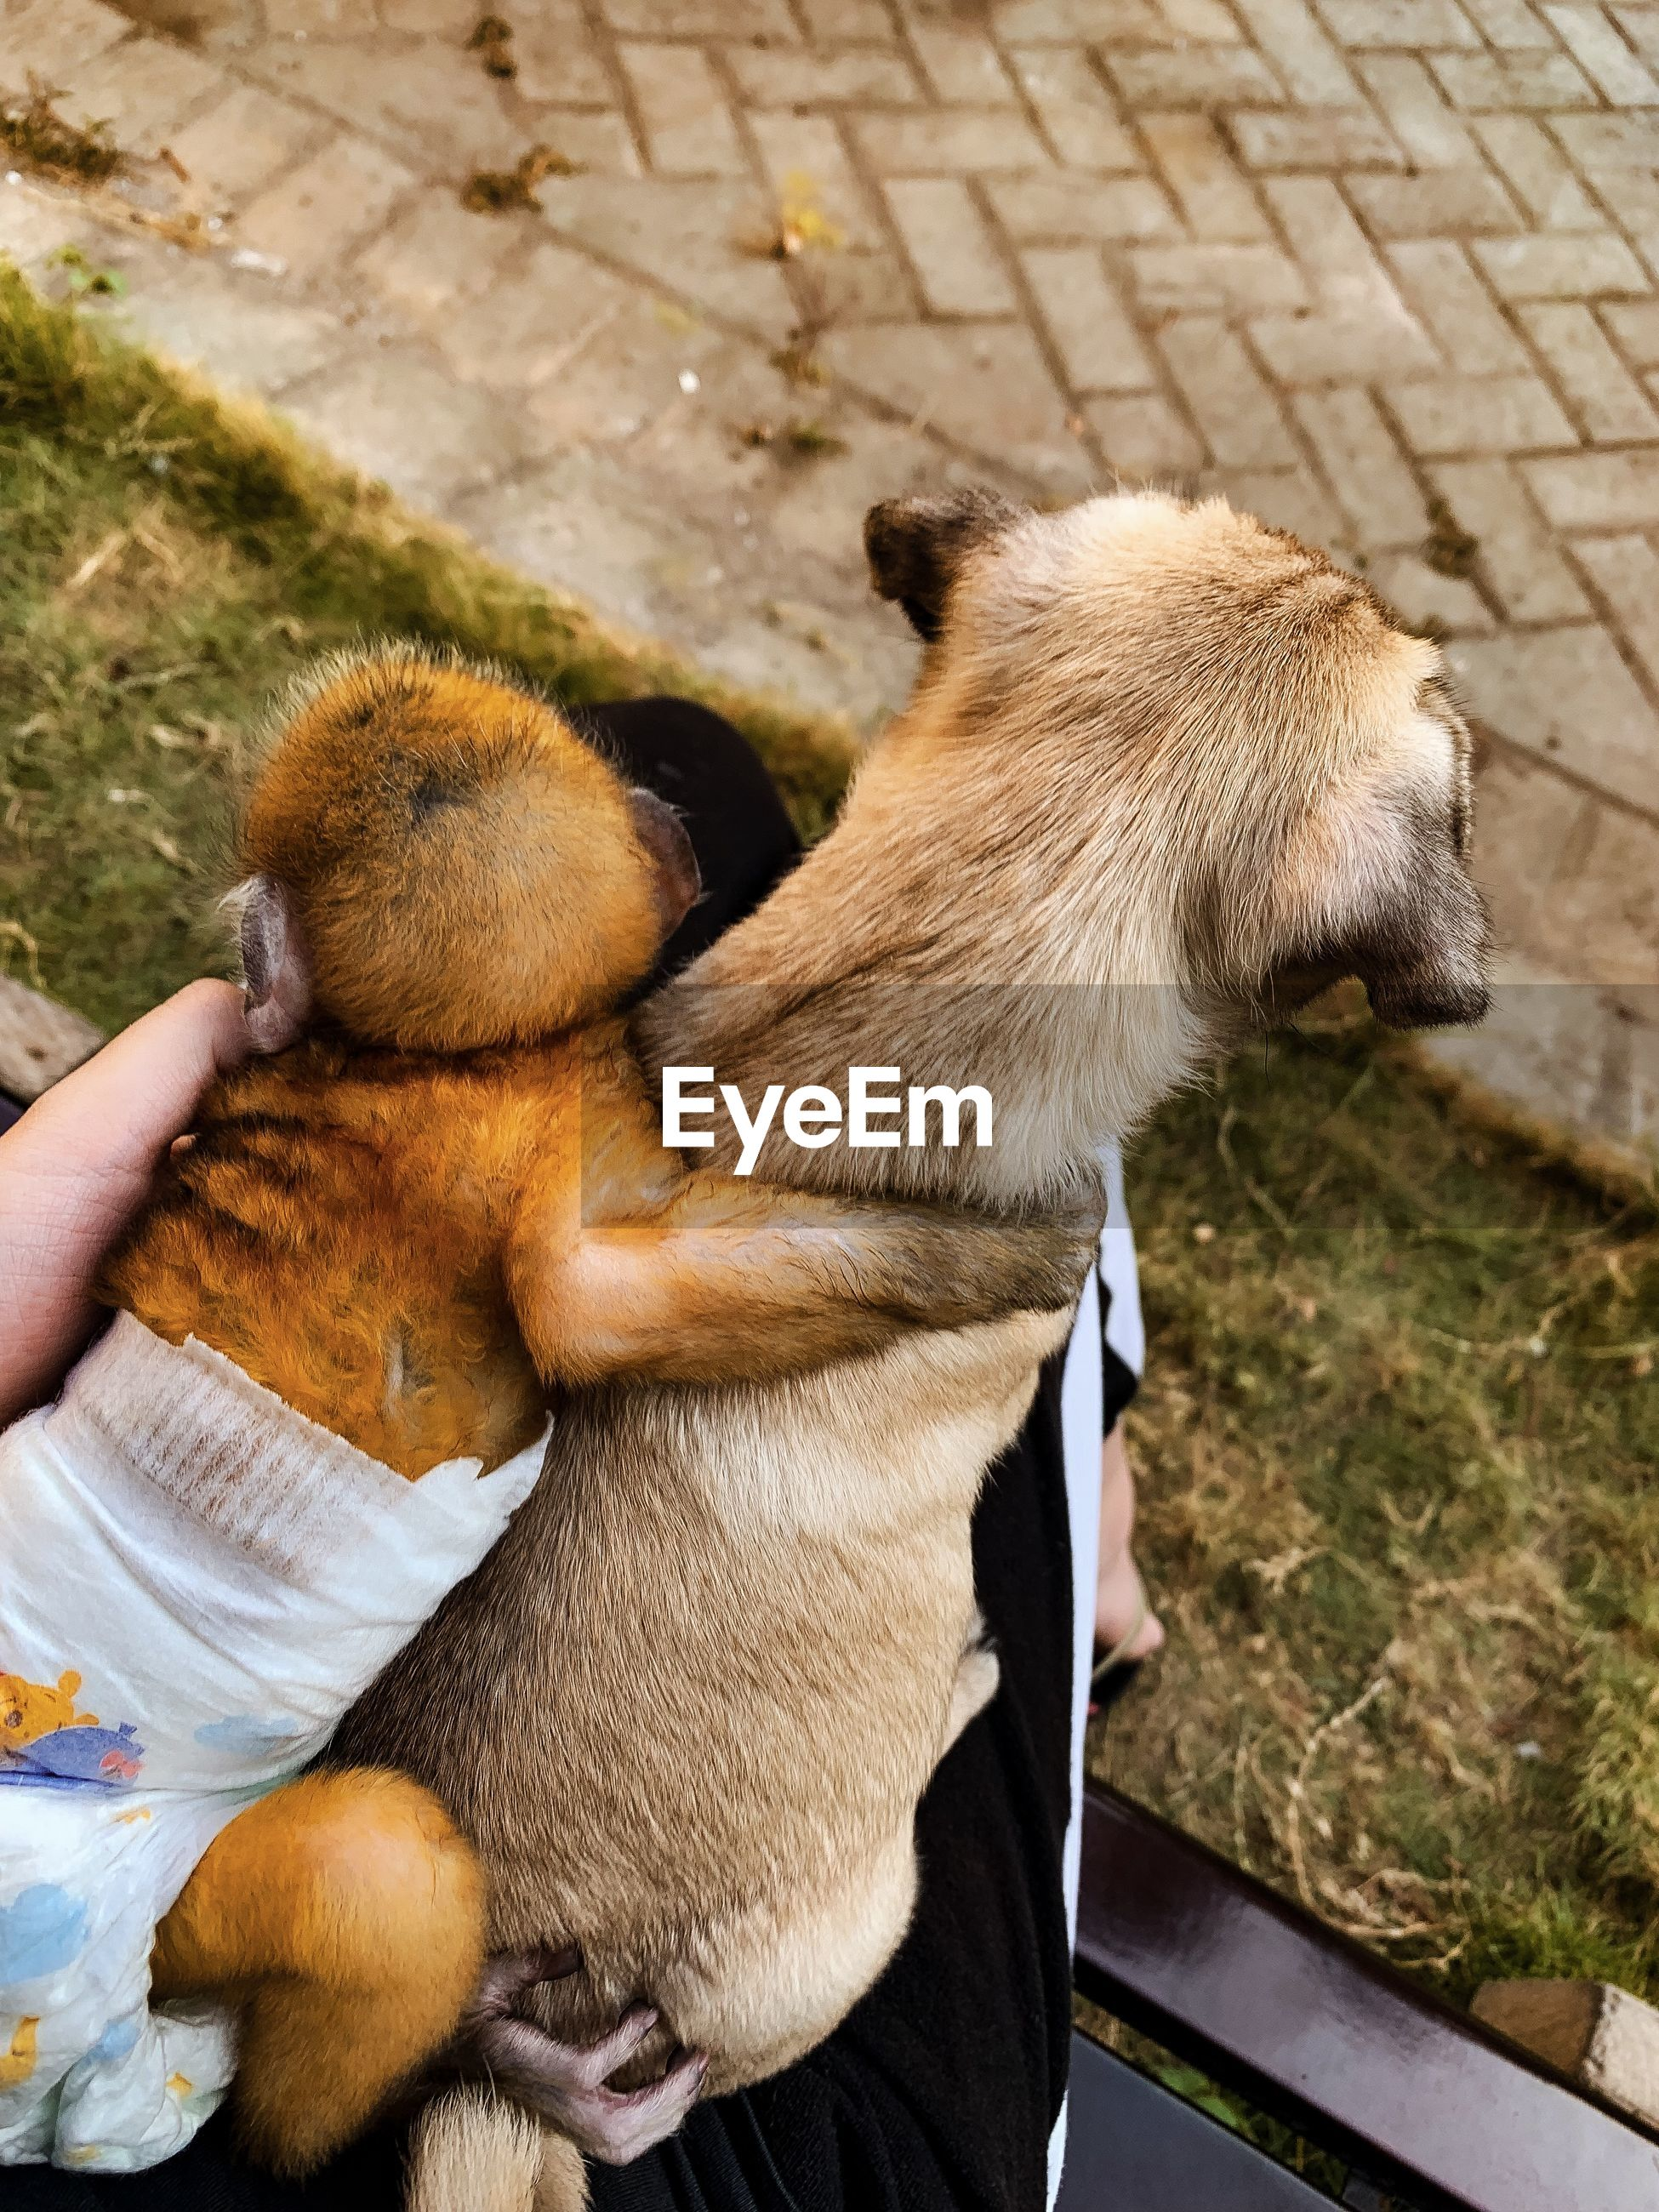 HIGH ANGLE VIEW OF PERSON HOLDING DOG BY HAND